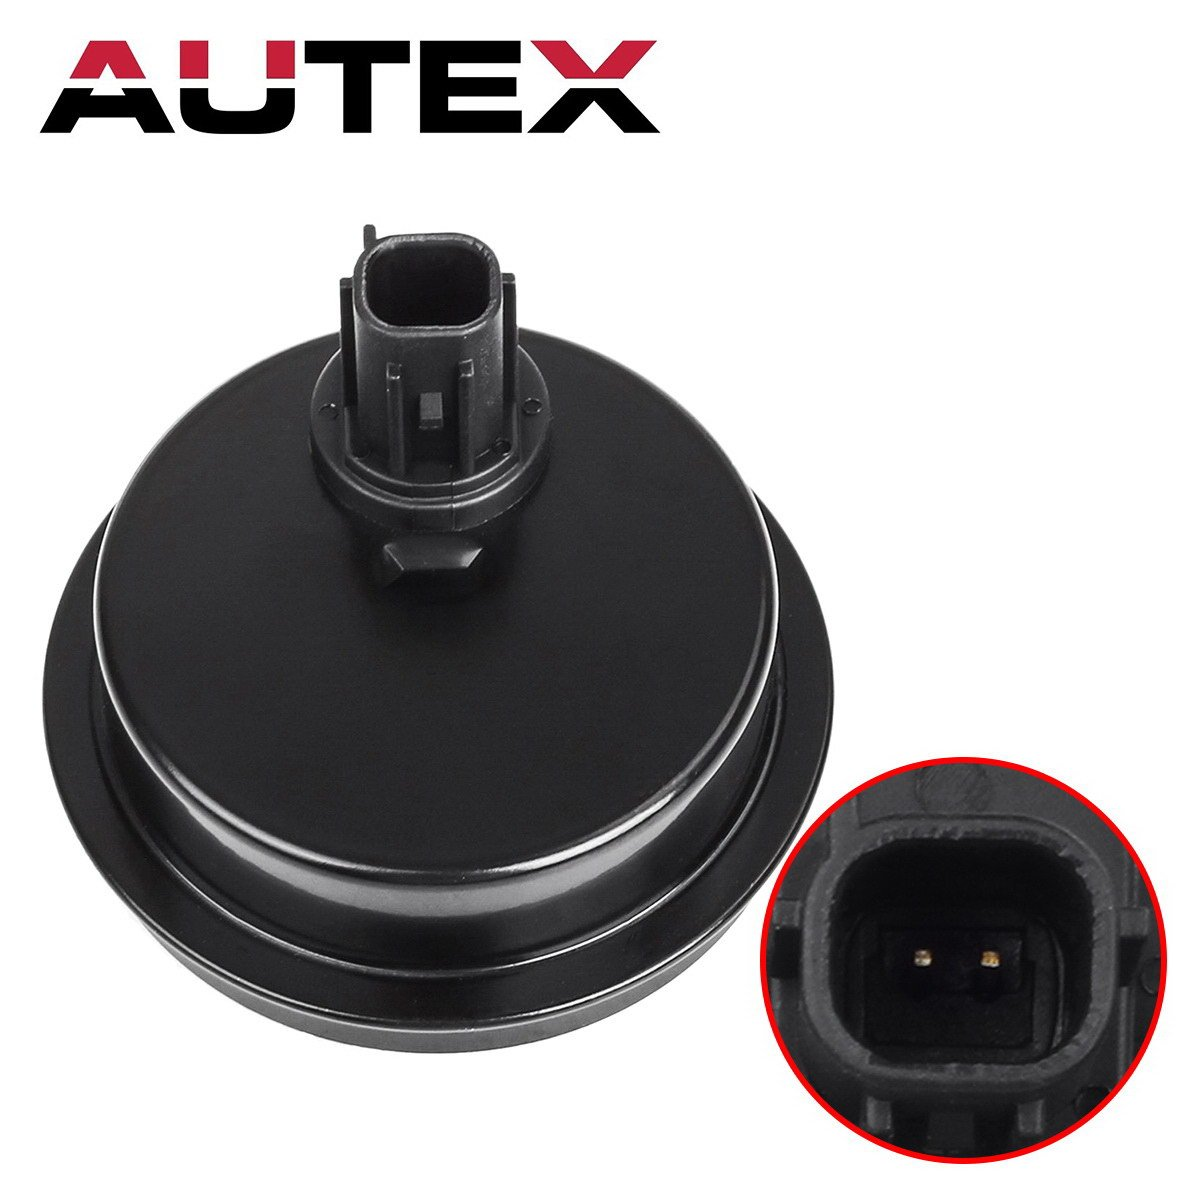 AUTEX ABS Wheel Speed Sensor Rear Left/Right 8954452040 ALS1388 compatible with 2008-2011 Scion xD 1.8L/2009-2010 Toyota Corolla 1.8L/2006-2011 Toyota Yaris 1.5L